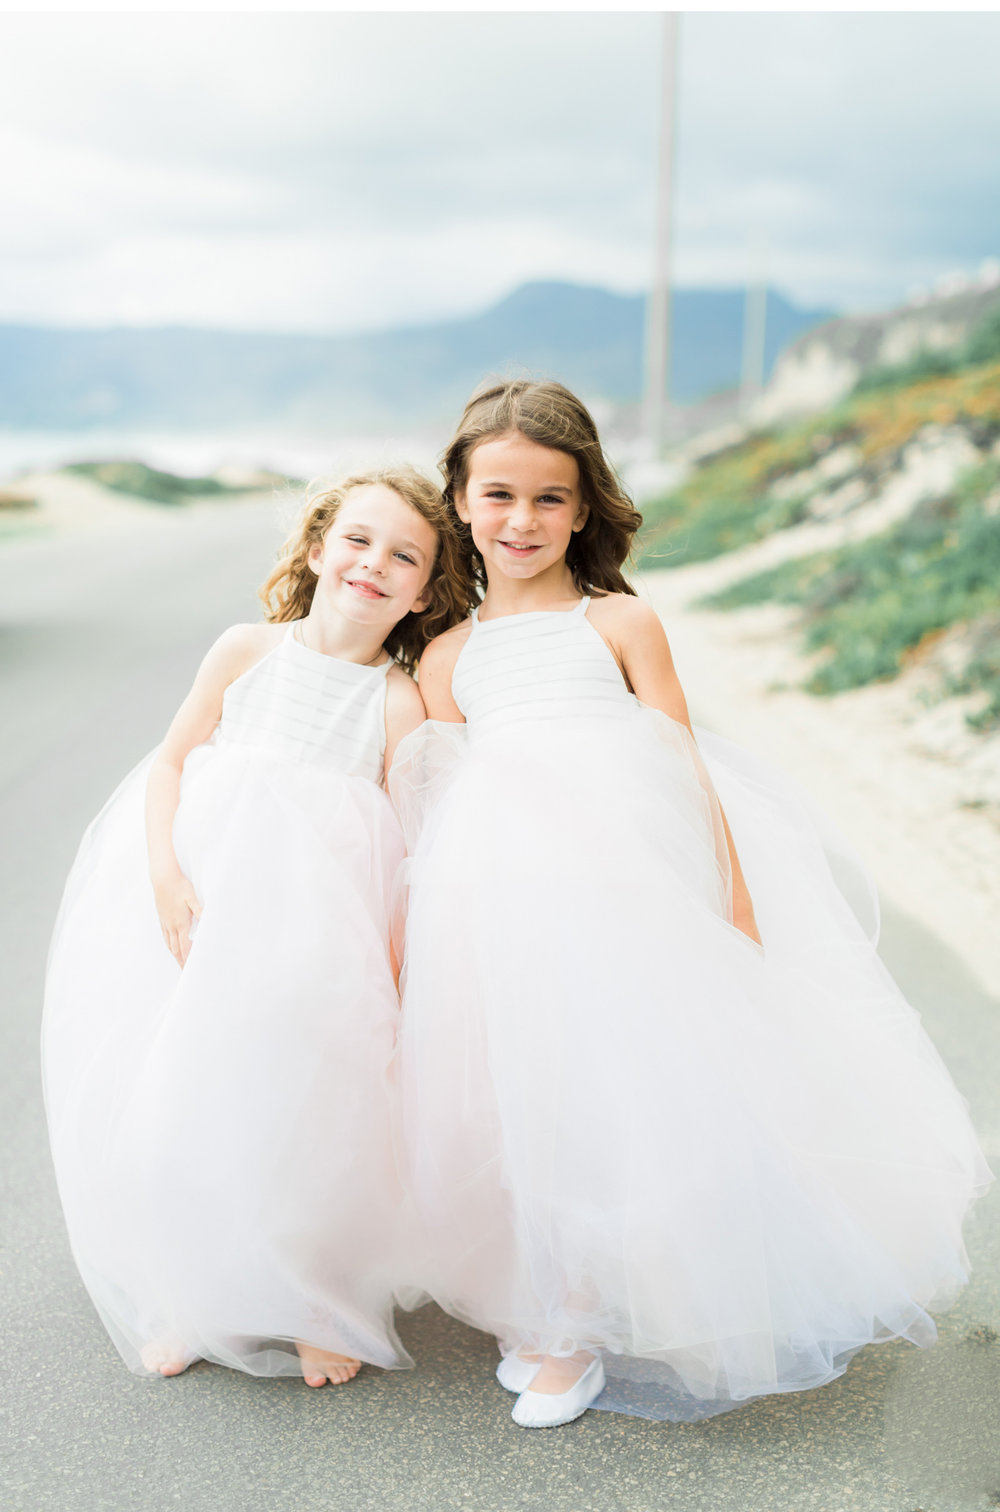 Rod-and-Lorin-Brewster-Style-Me-Pretty-Malibu-Beach-Wedding-Natalie-Schutt-Photography_05.jpg